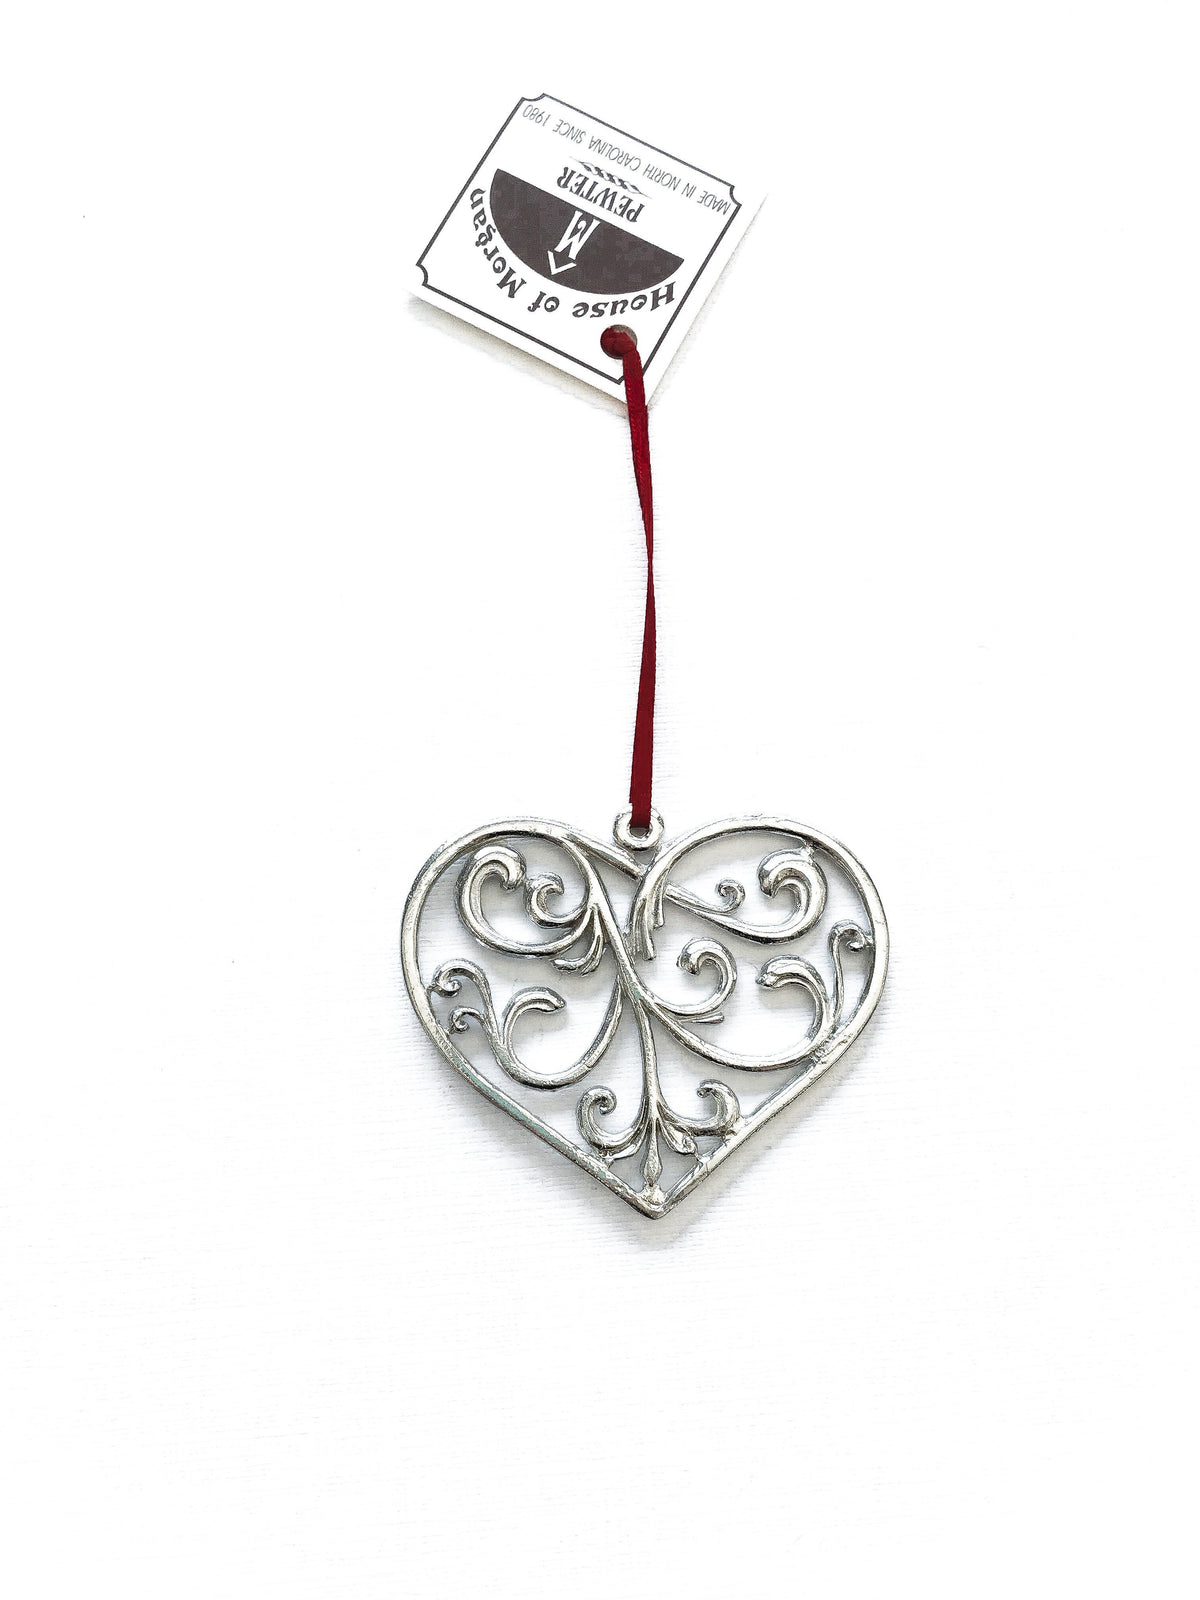 Handmade Elegant Swirly Heart Christmas Ornament Pewter - House of Morgan Pewter